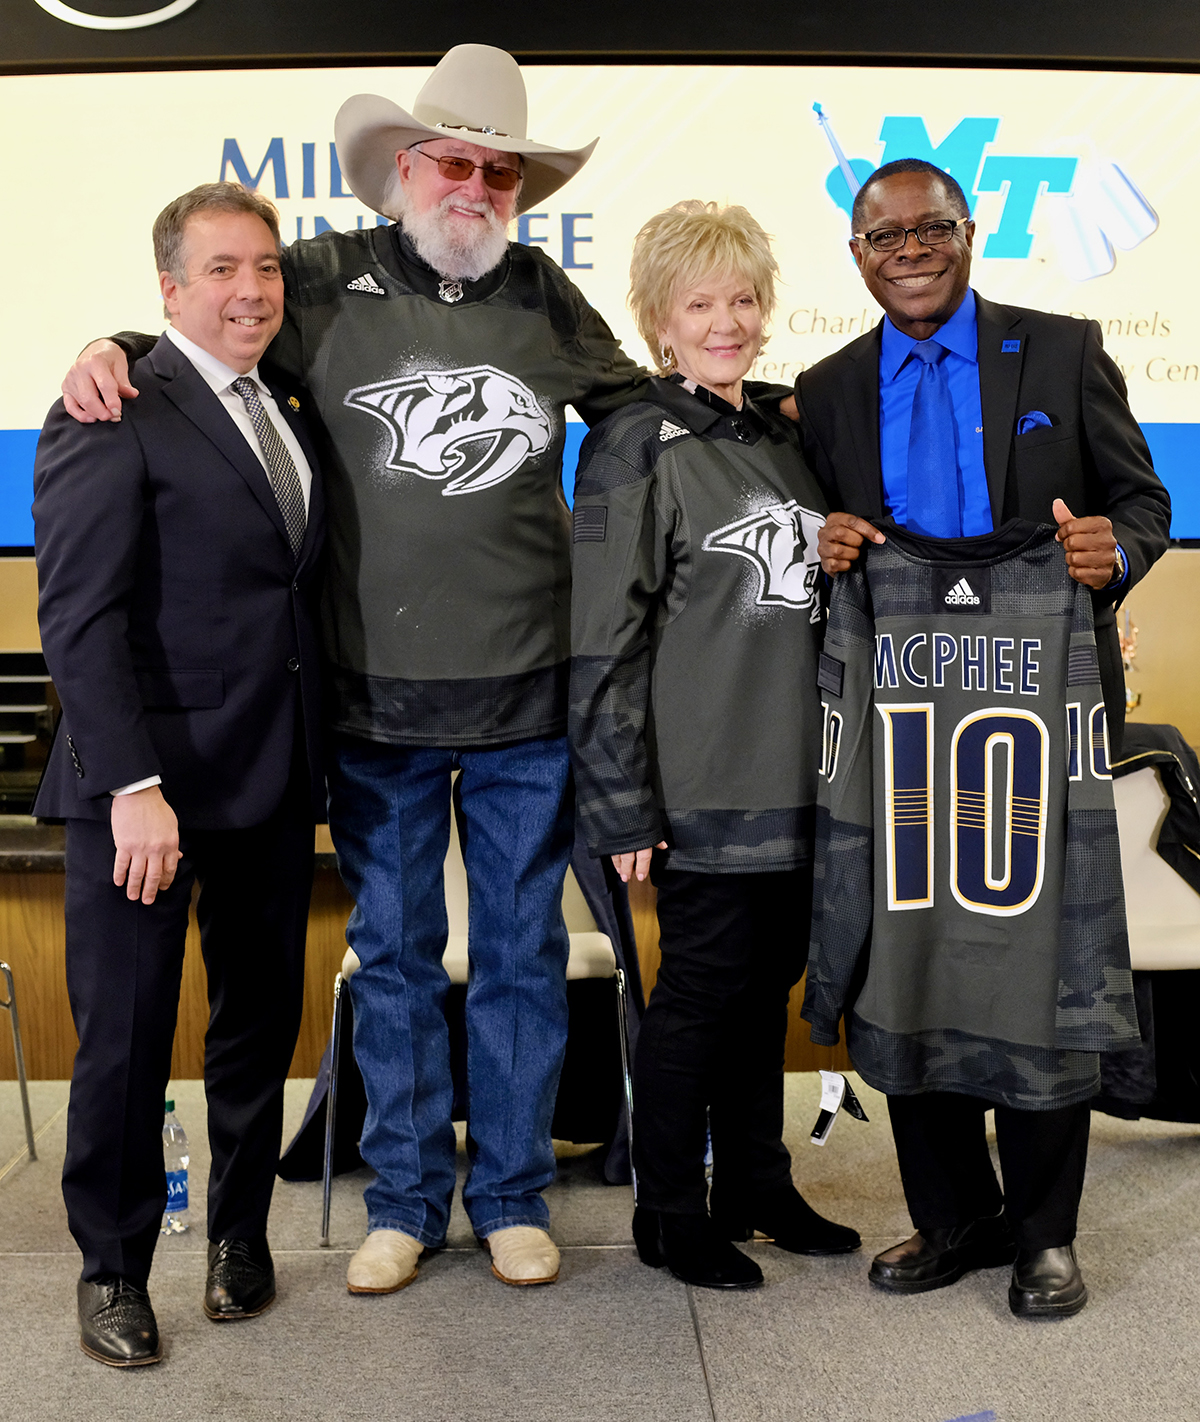 Nashville Predators President and CEO Sean Henry, left, legendary musician Charlie Daniels, Hazel Daniels and MTSU President Sidney A. McPhee are shown with special edition Predators' sweaters presented by the team Monday, March 2, at the Bridgeston Arena. The Predators announced the creation of the General's Fund during a news conference. (MTSU photo by David Foster)